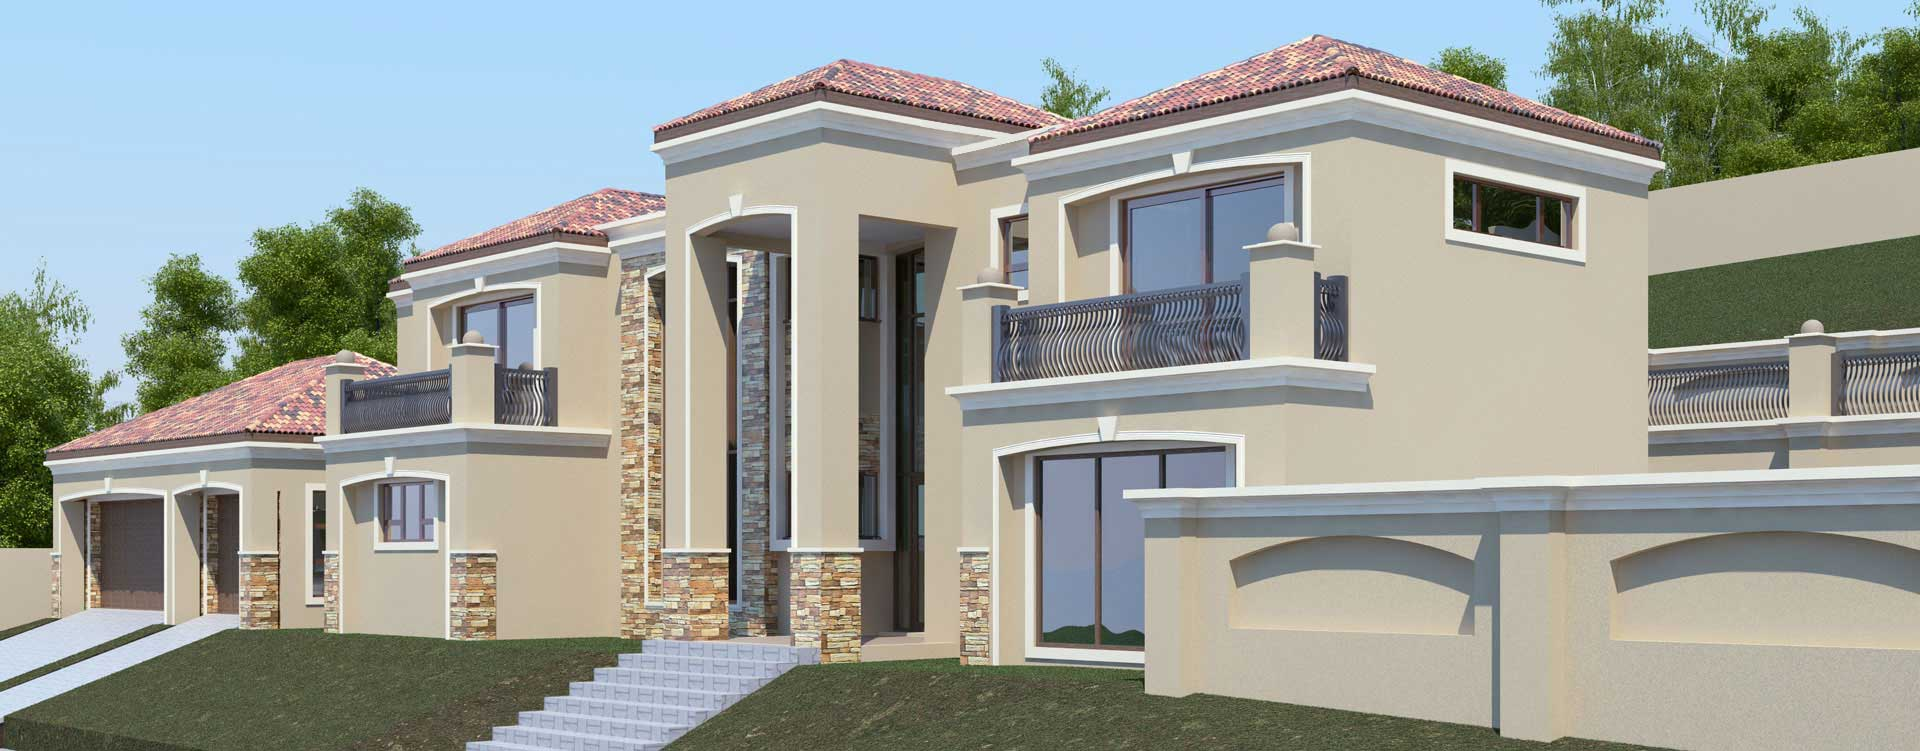 house plans in south africa home designs floor plans house plans on tuscan house plans in